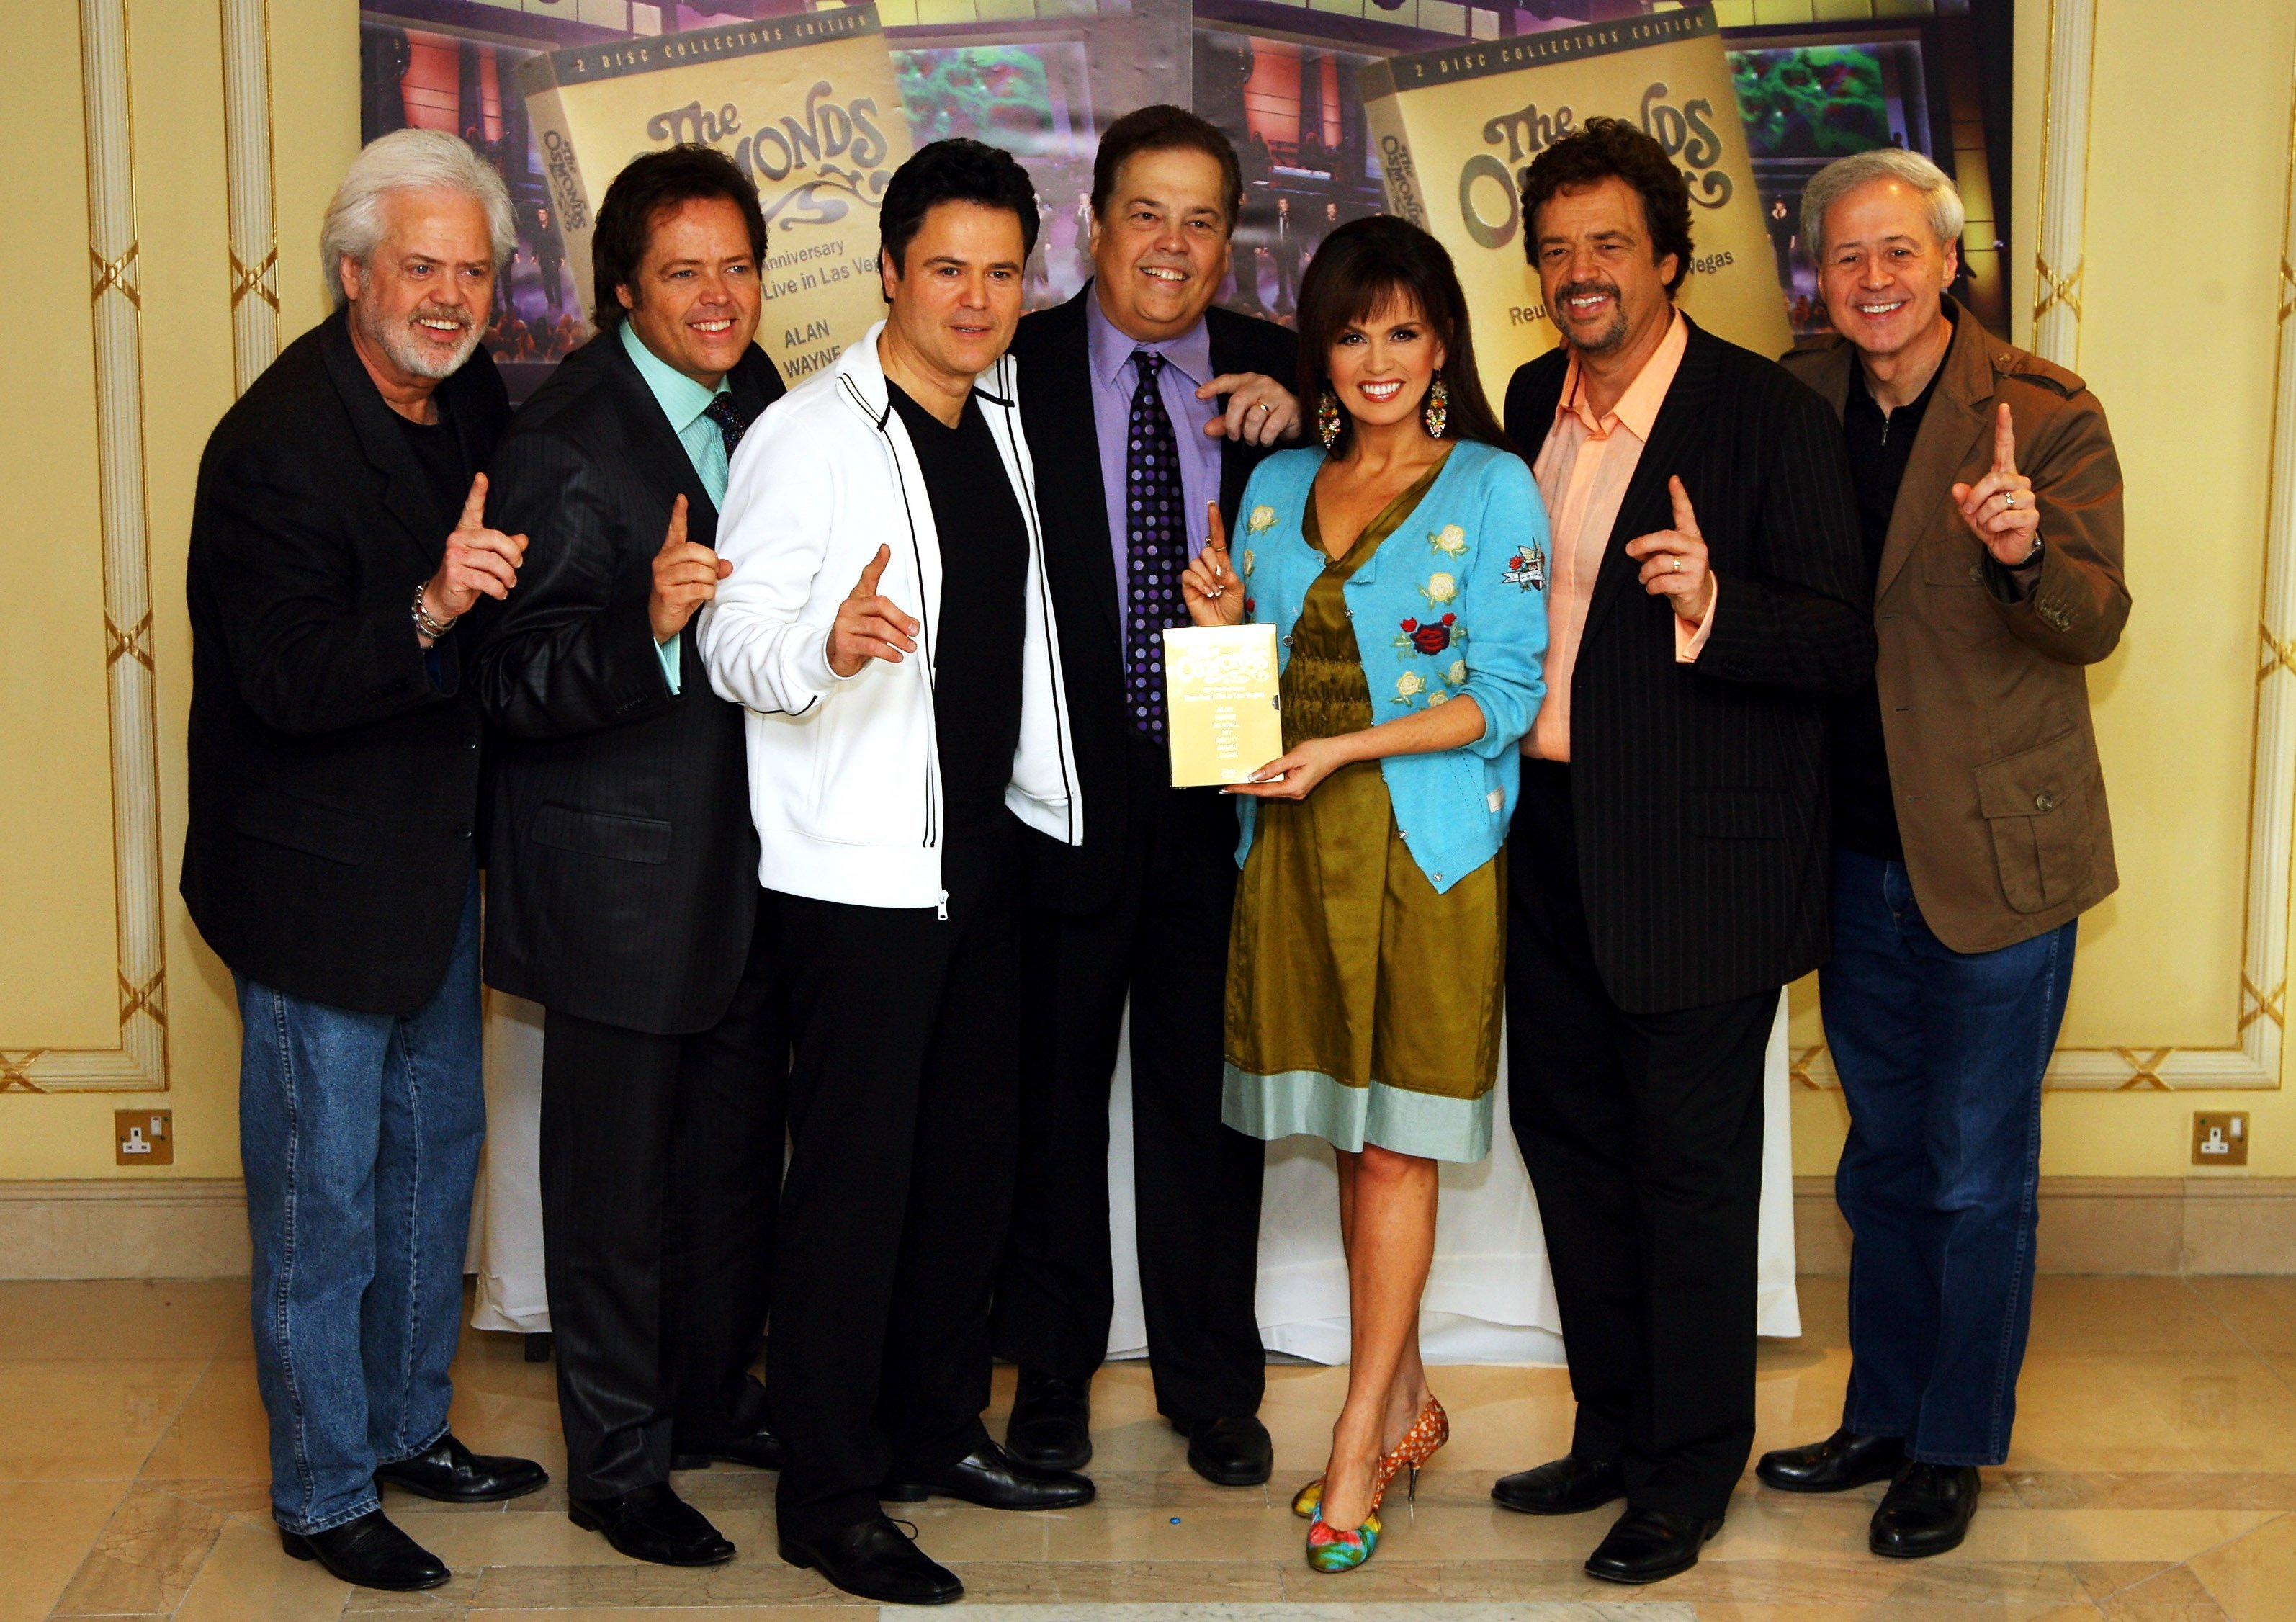 Merril, Jimmy, Donny, Alan, Marie, Jay and Wayne Osmond promoting their number one DVD and 50th Anniversary Concert in Las Vegas on May 29, 2008 | Photo: GettyImages